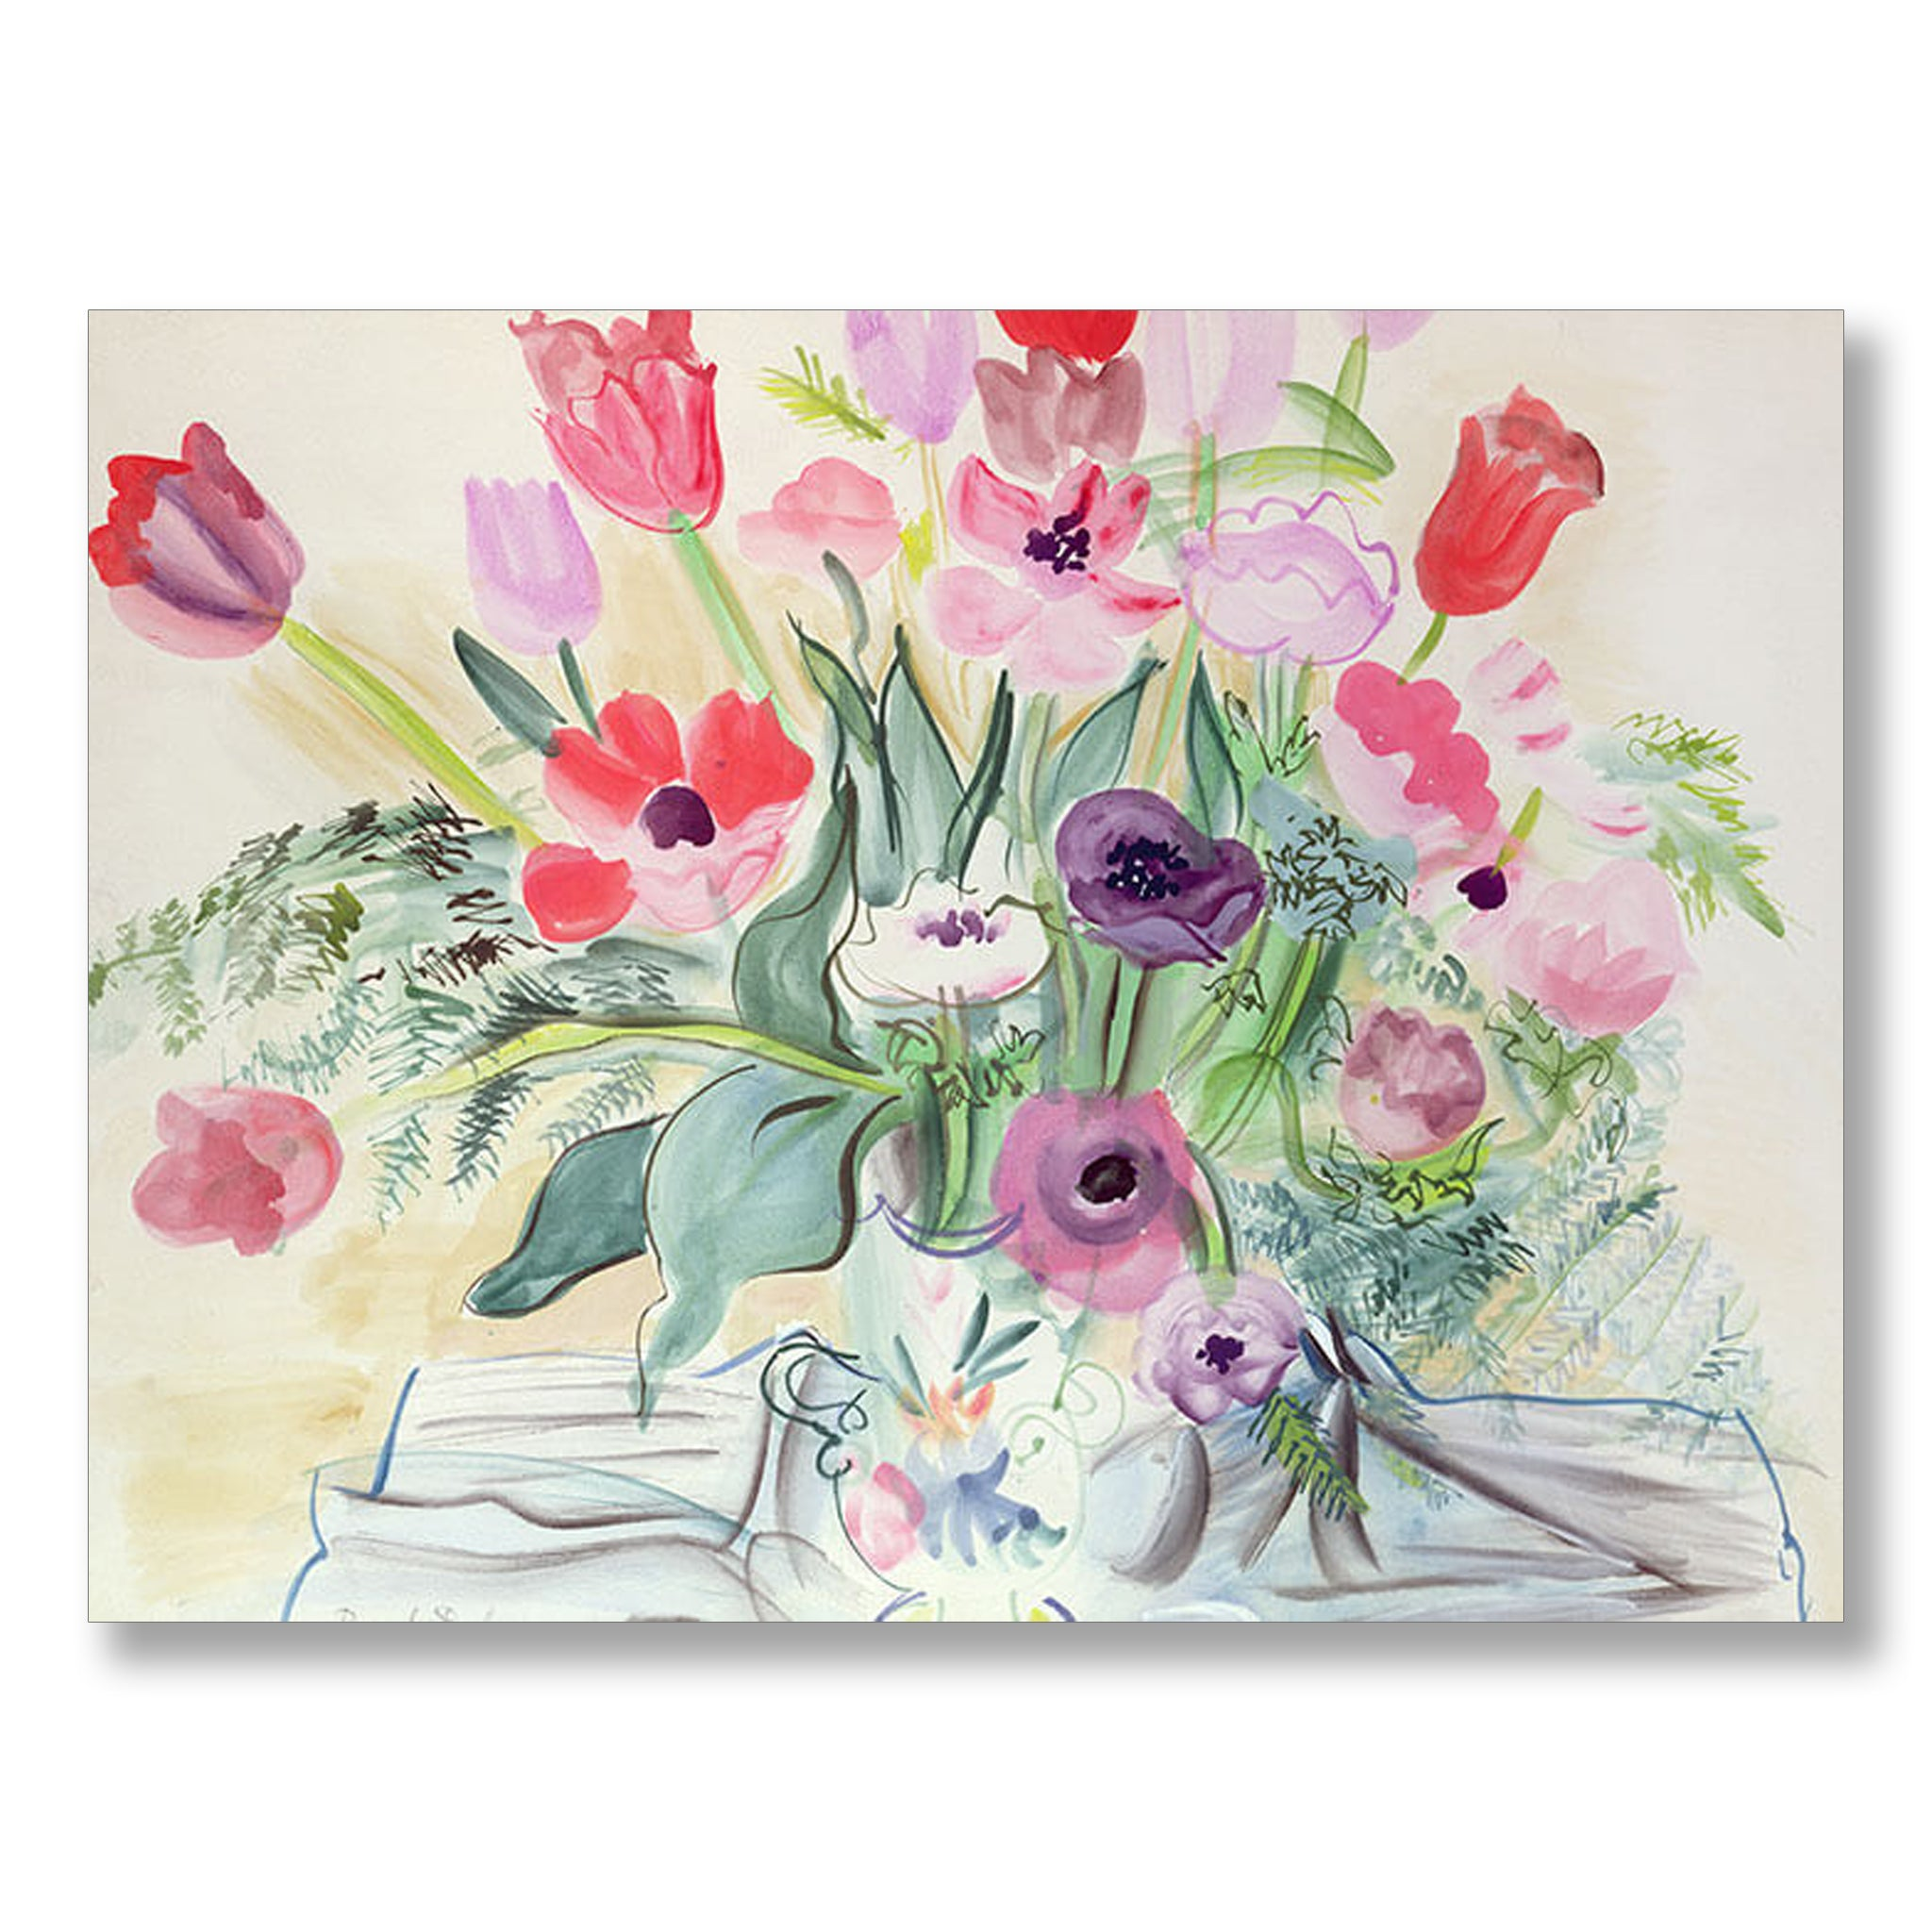 Anemones 1942 by Raoul Dufy | Nicholas Engert Interiors